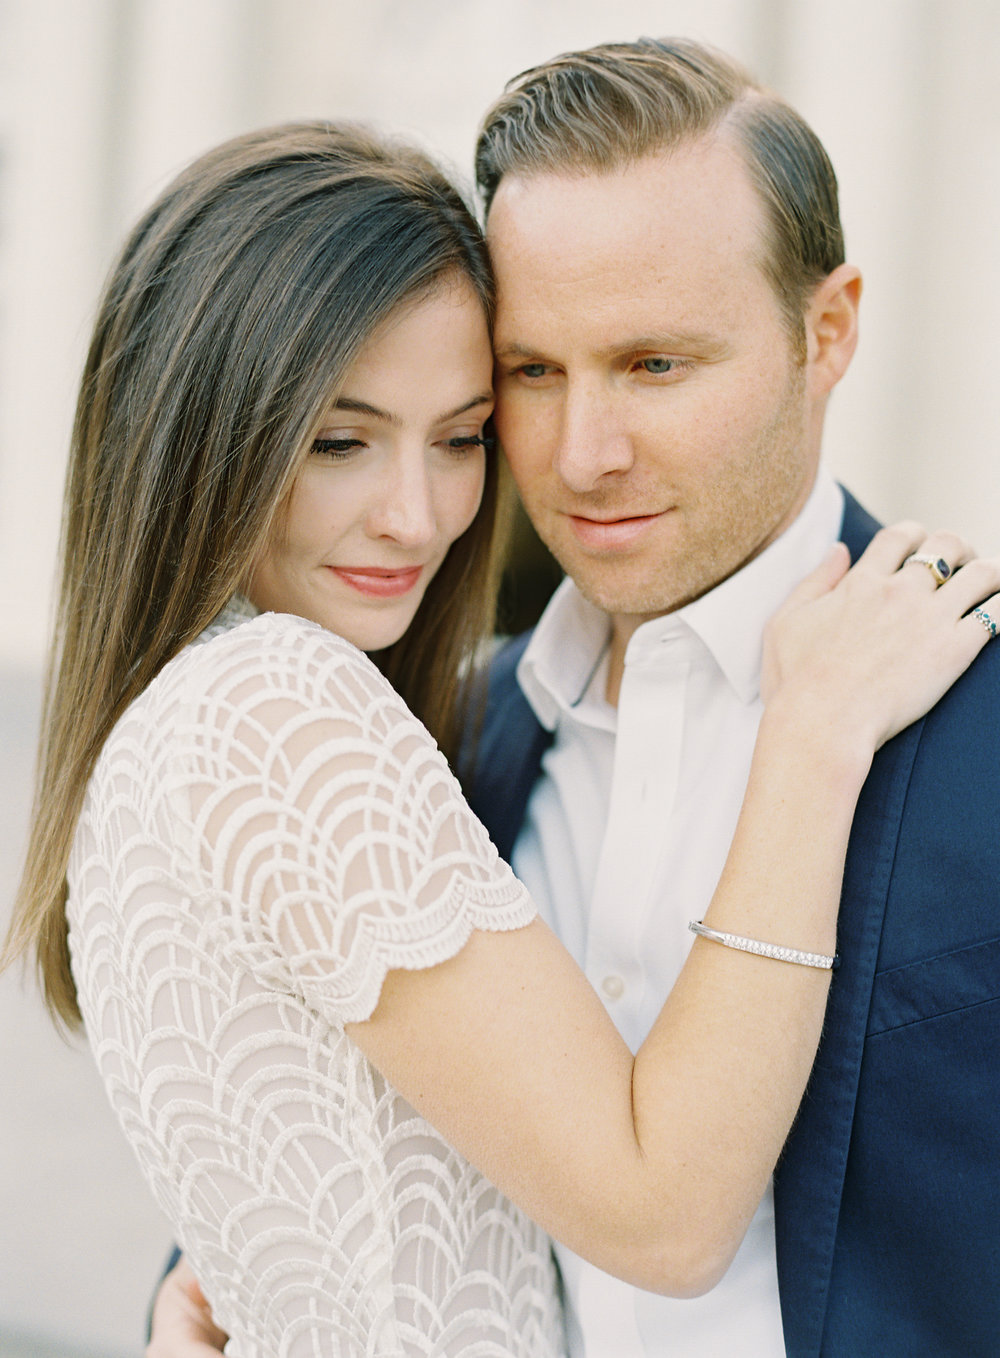 Hillary and Erik Engagement-Carrie King Photographer-100.jpg